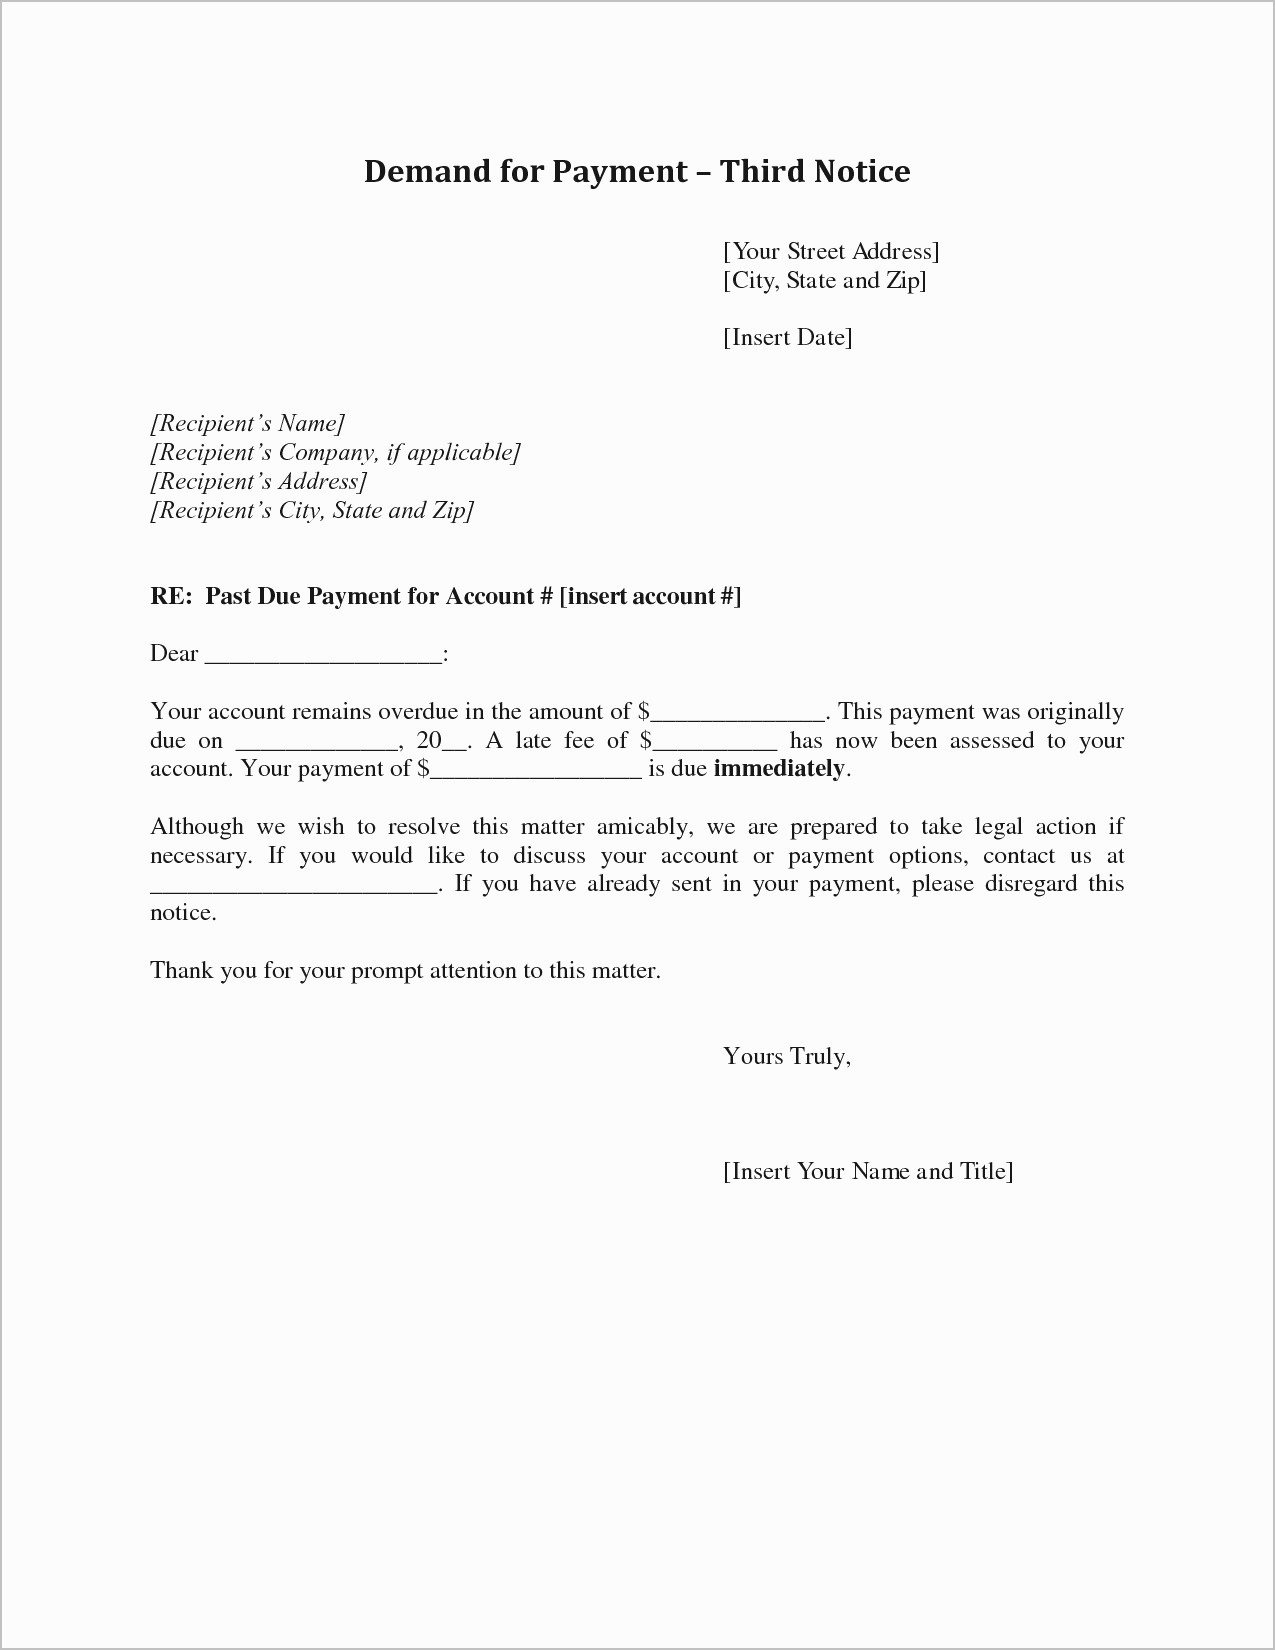 Rent Demand Letter Template - Sample Demand Letter for Unpaid Rent Beautiful Letter Od Demand